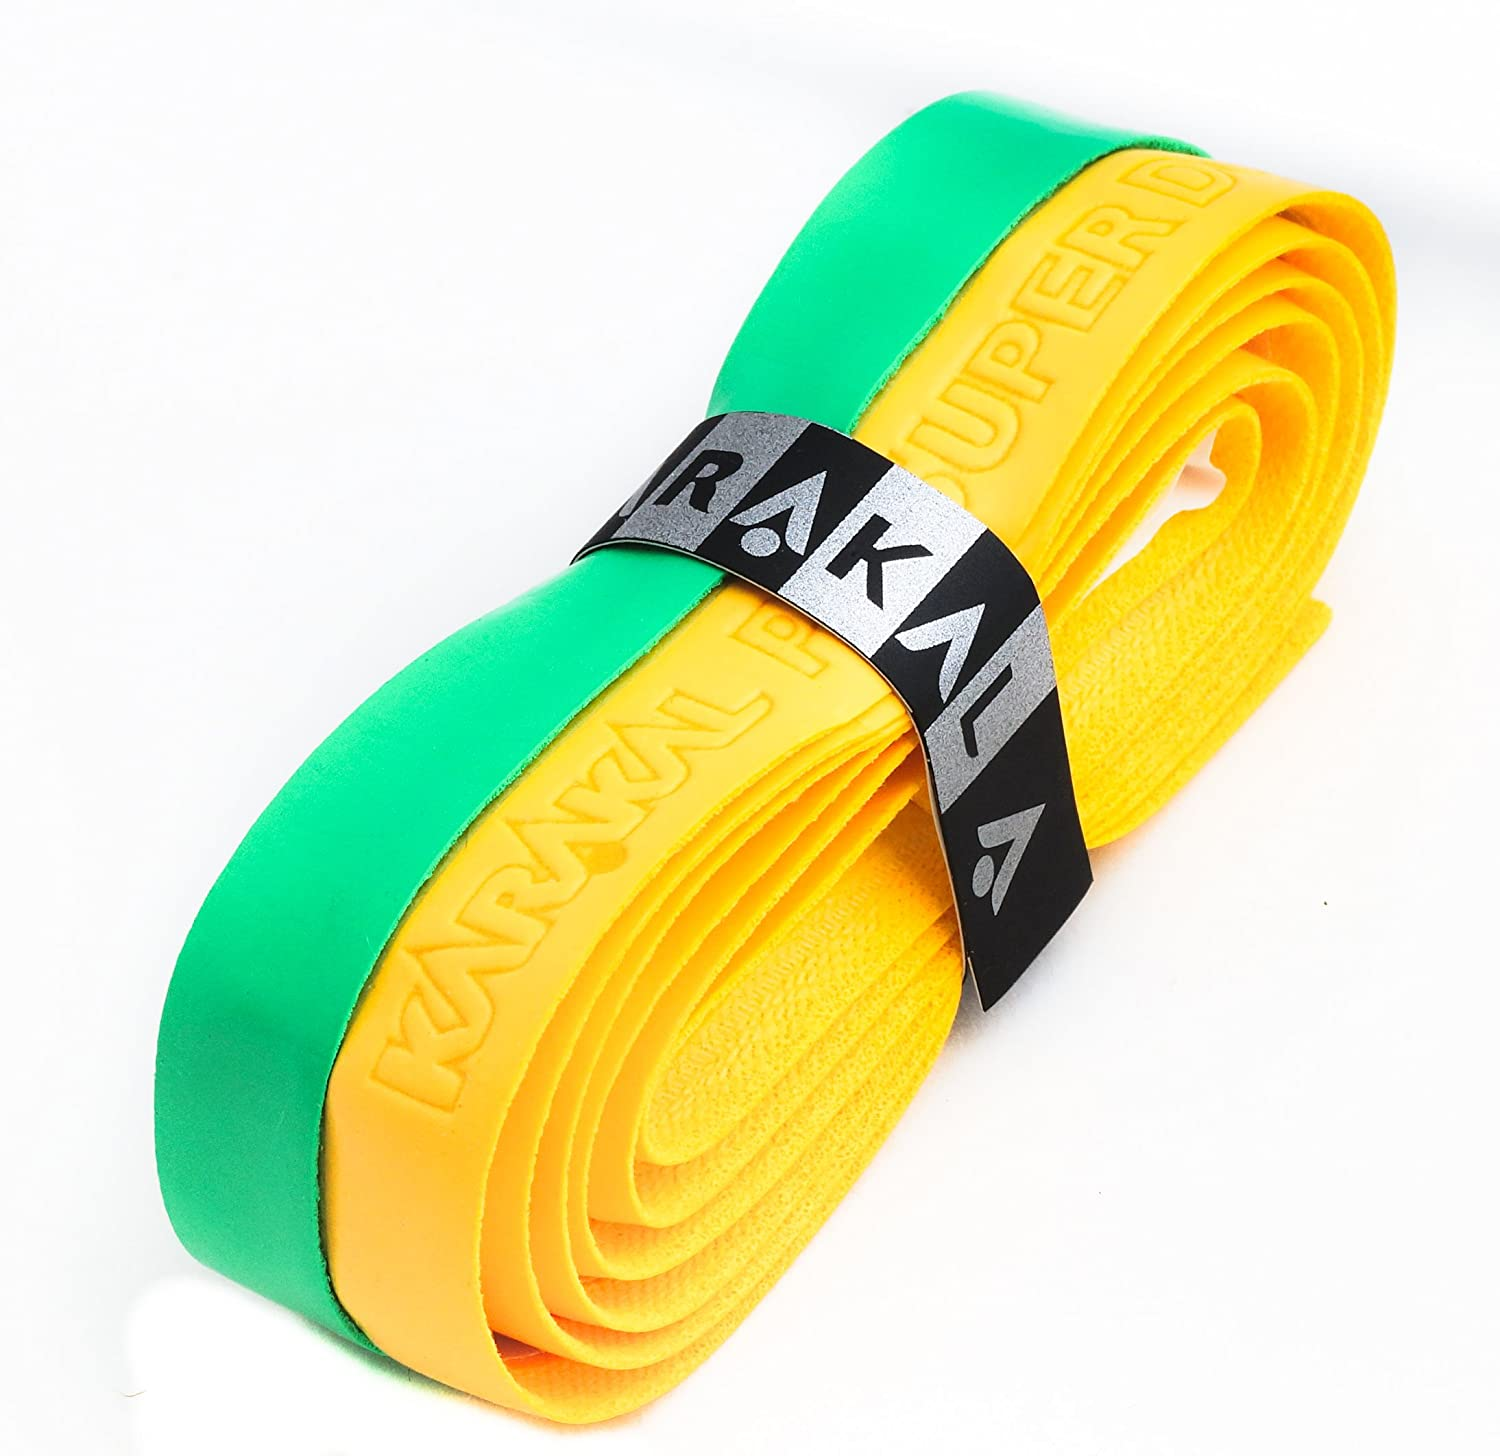 Karakal PU Supergrip replacement racquet grip - tennis / badminton / squash - Yellow / Green x 2